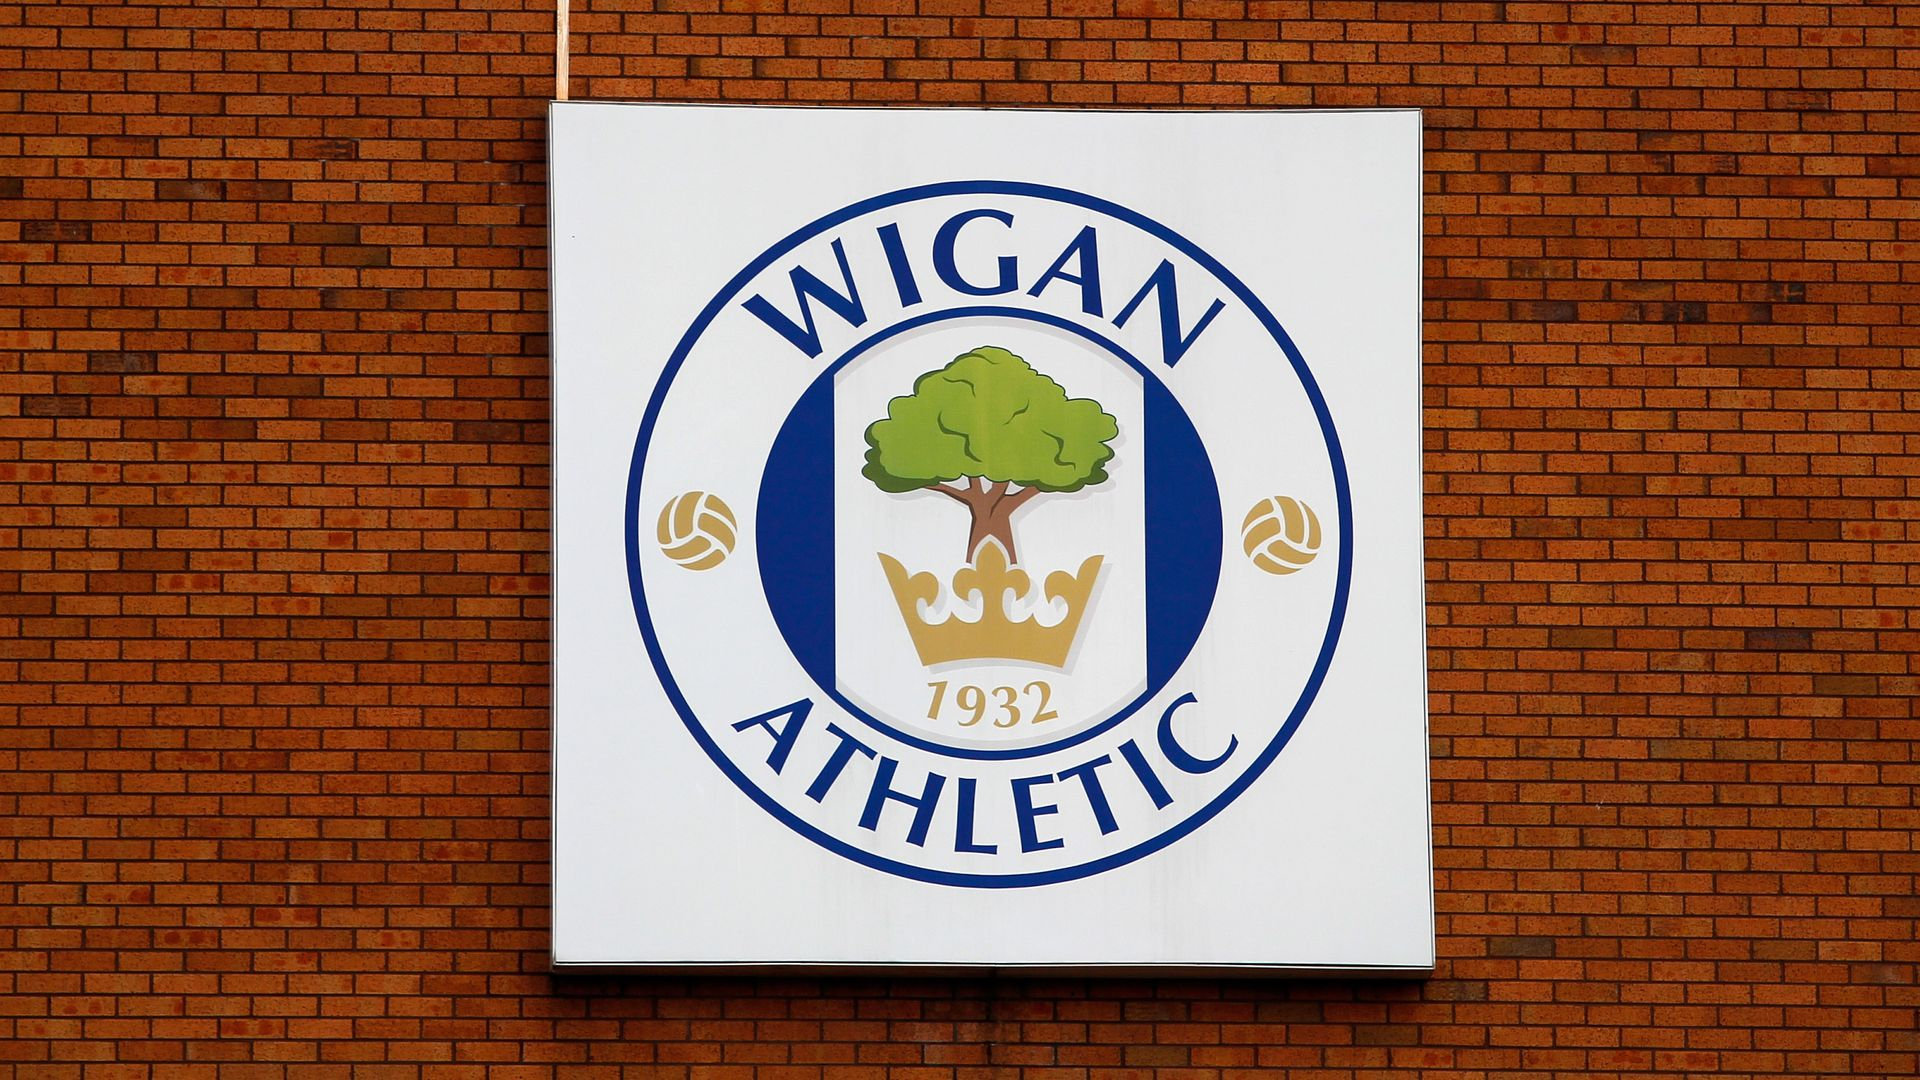 Spanish bidder agrees to buy Wigan